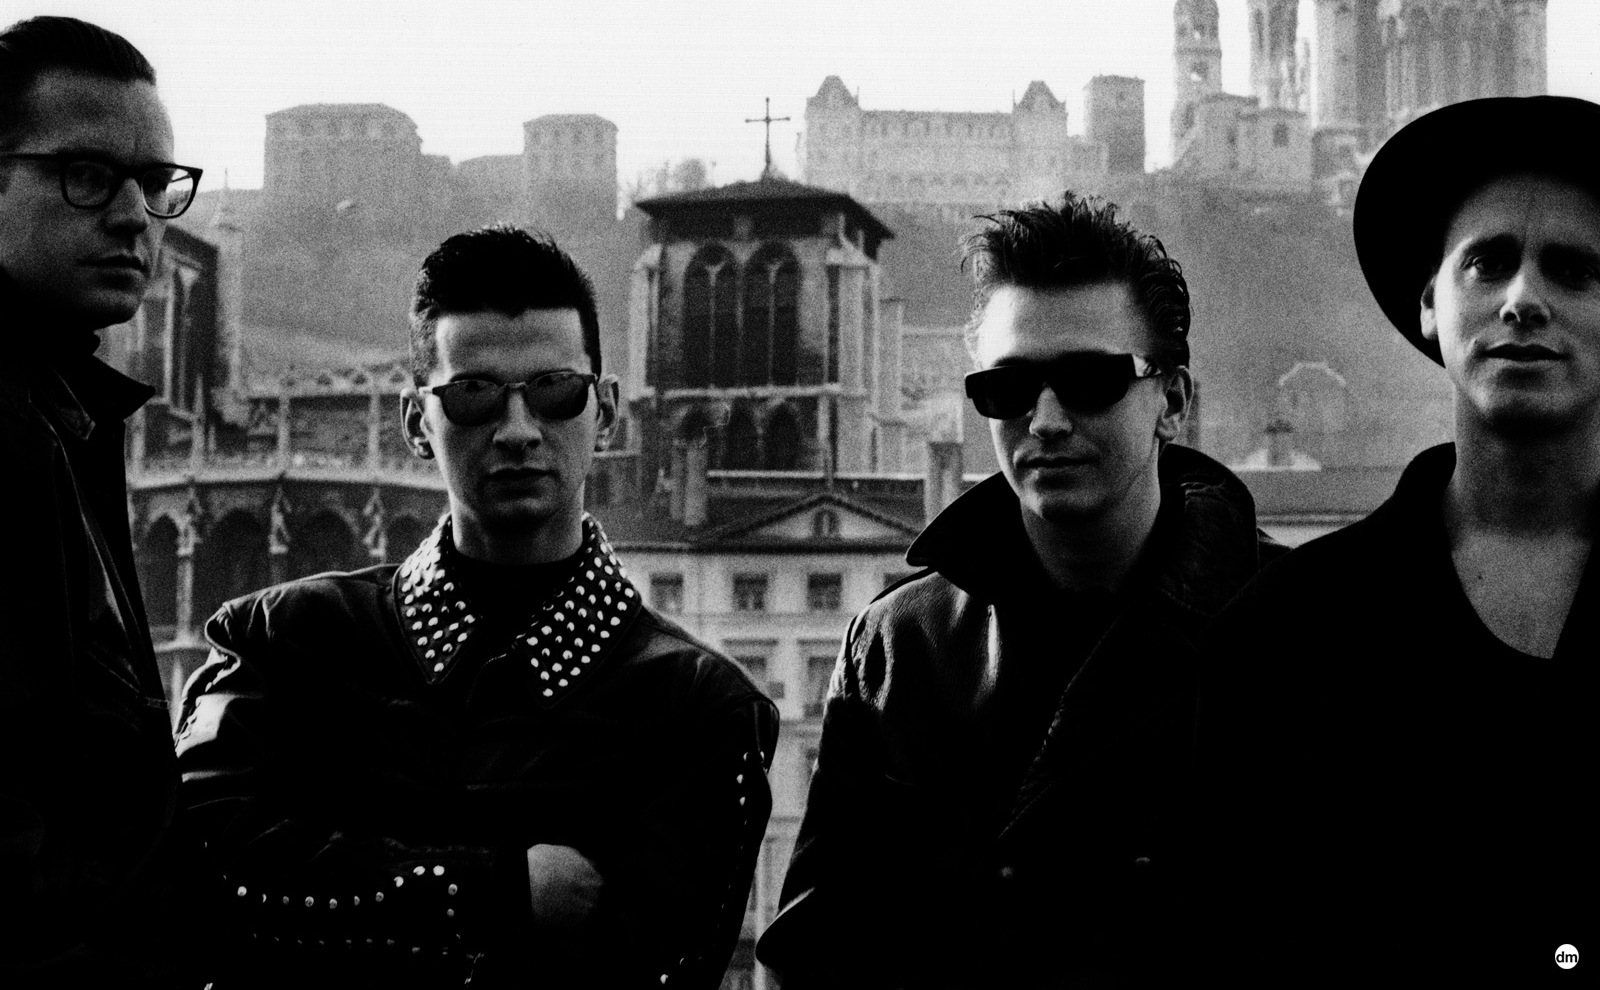 Depeche Mode - The Singles 81 > 98